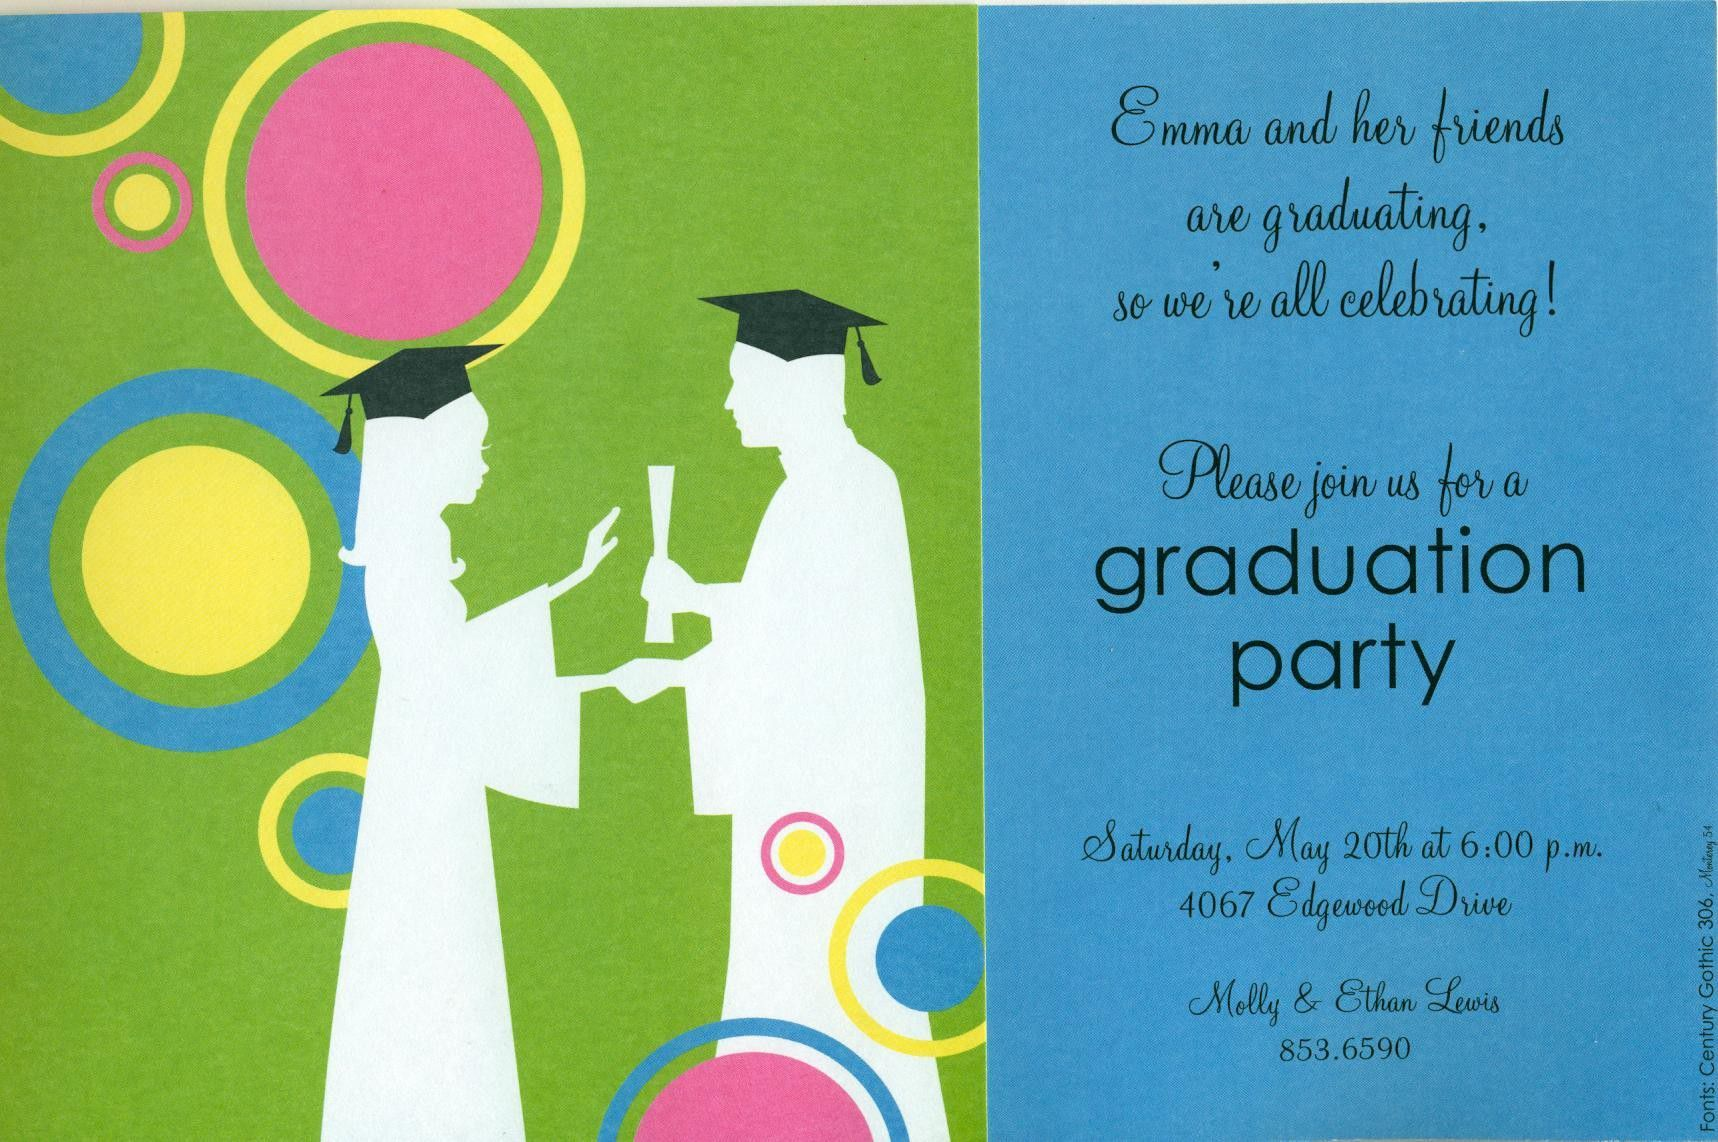 baby shower bbq invitation templates%0A graduation invitation templates free download